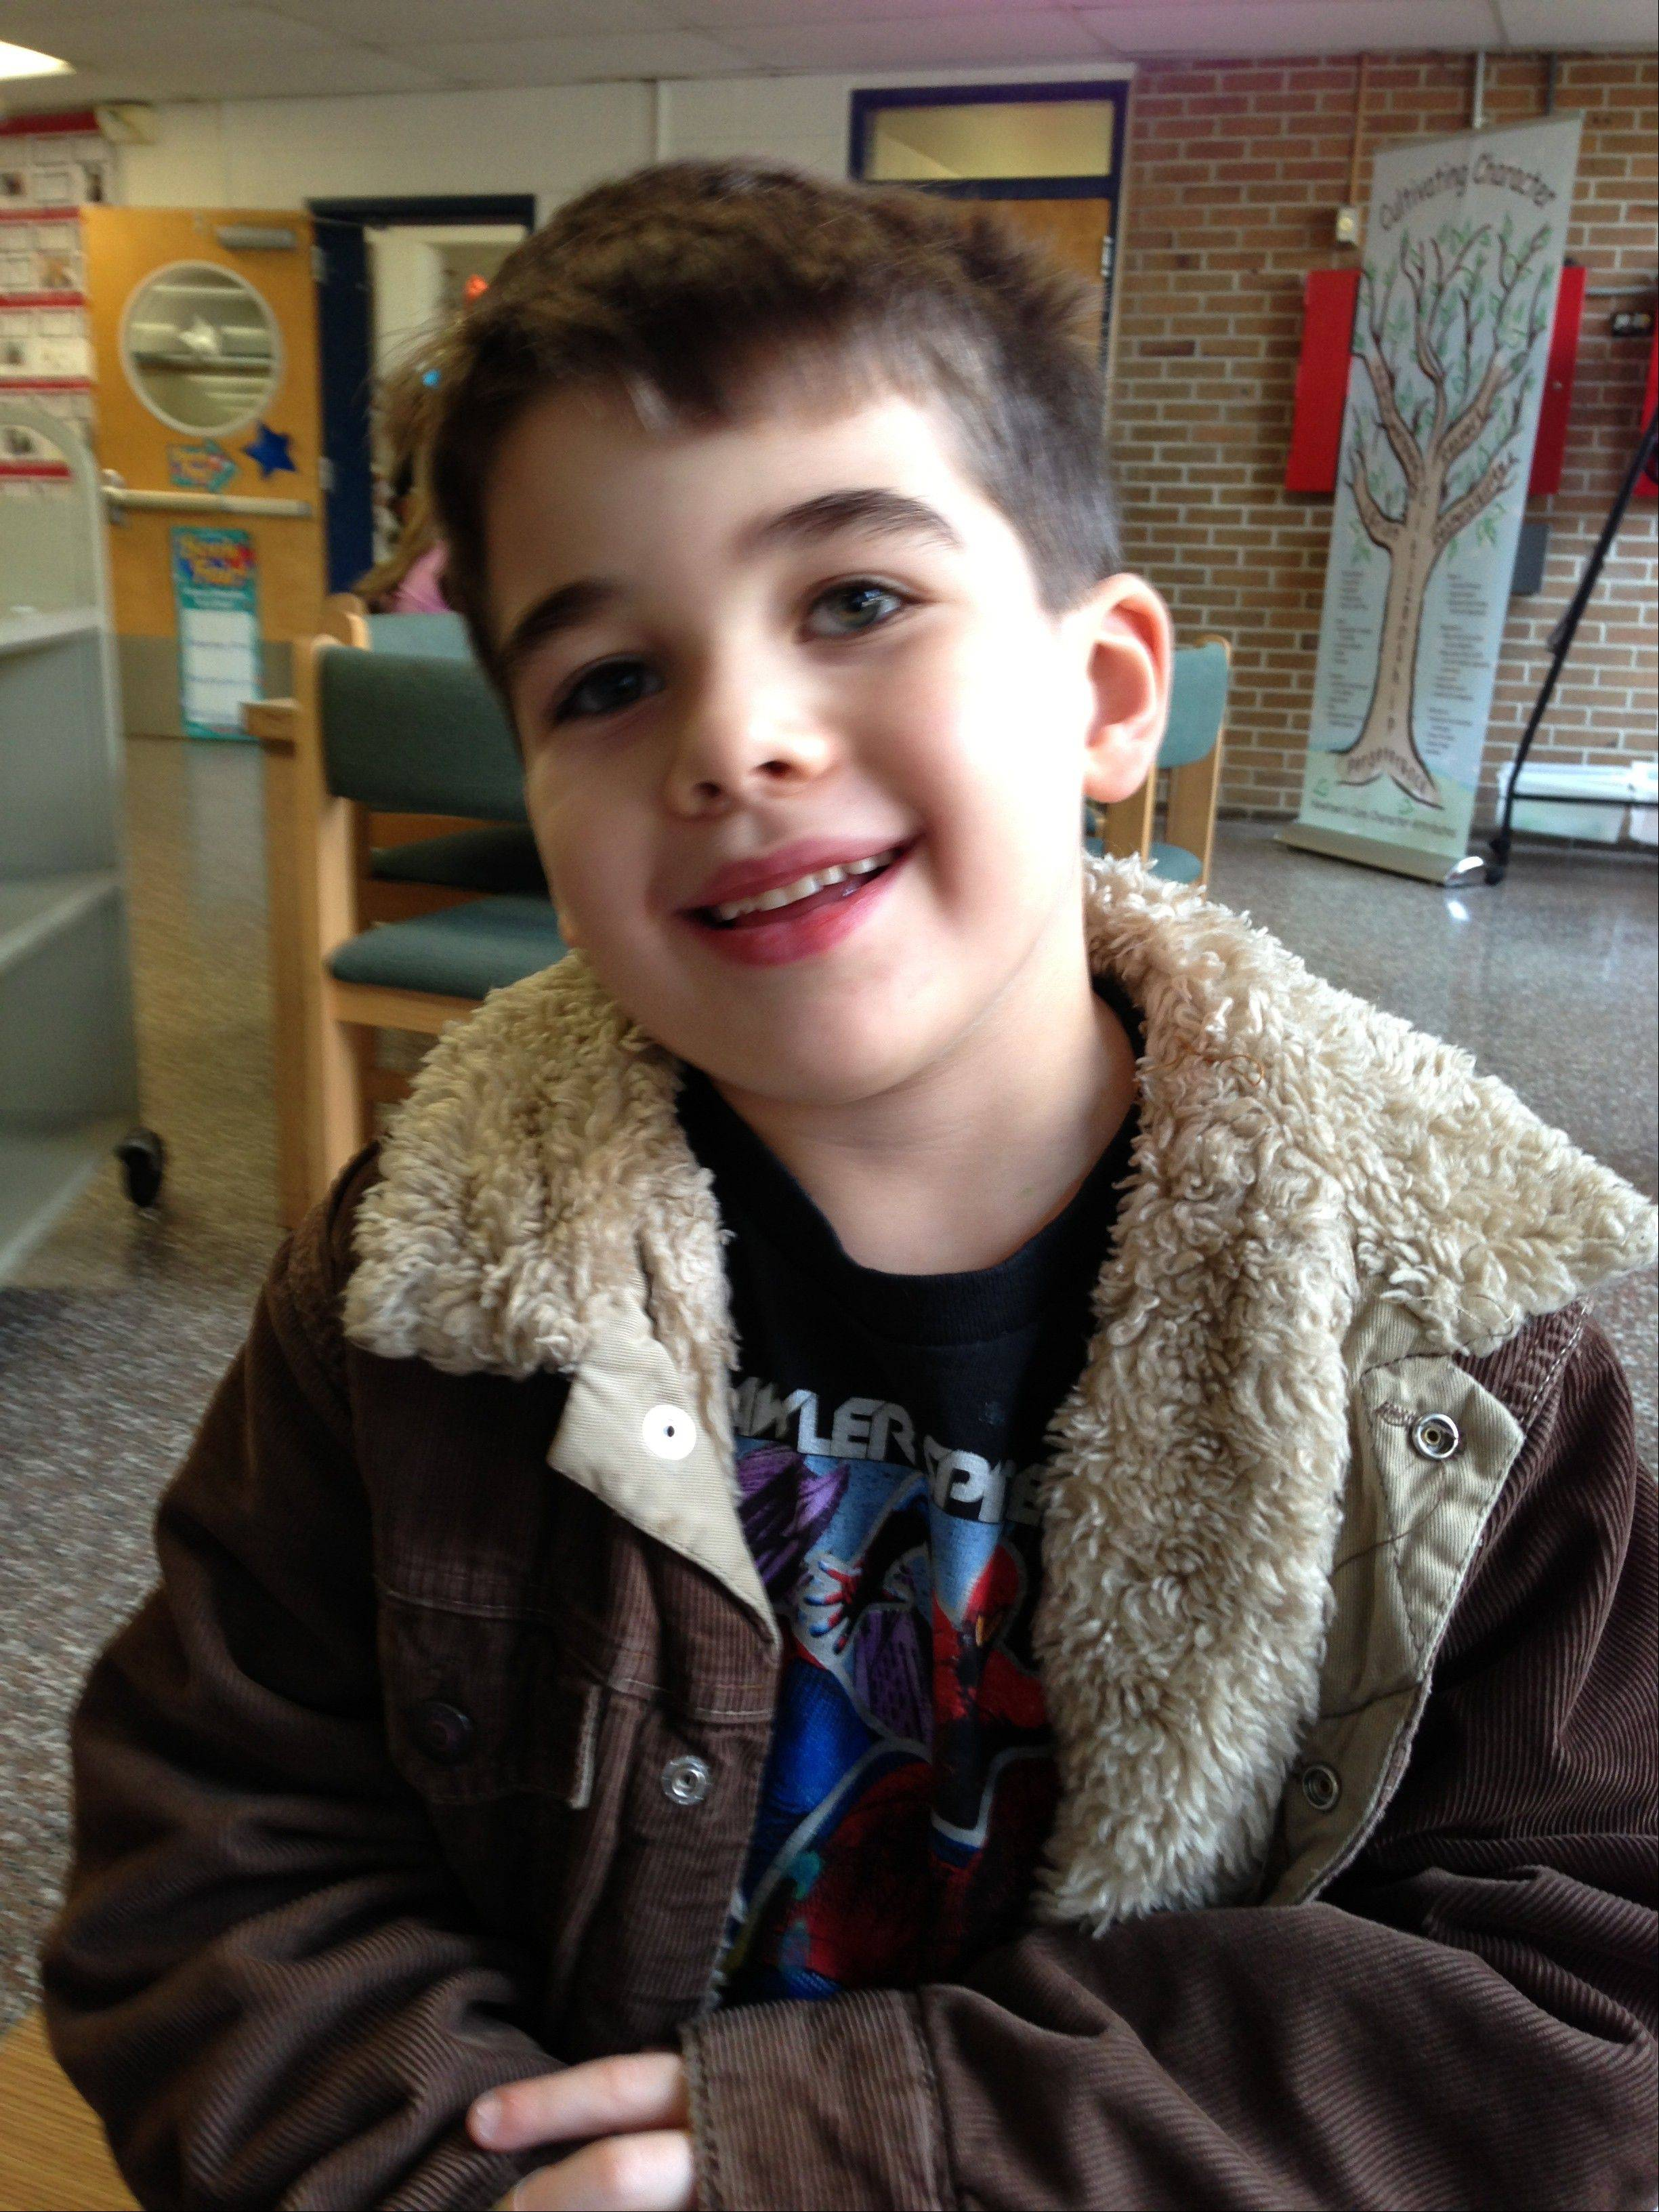 This Nov. 13, 2012 photo provided by the family via The Washington Post shows Noah Pozner. The six-year-old was one of the victims in the Sandy Hook elementary school shooting in Newtown, Conn. on Dec. 14, 2012.